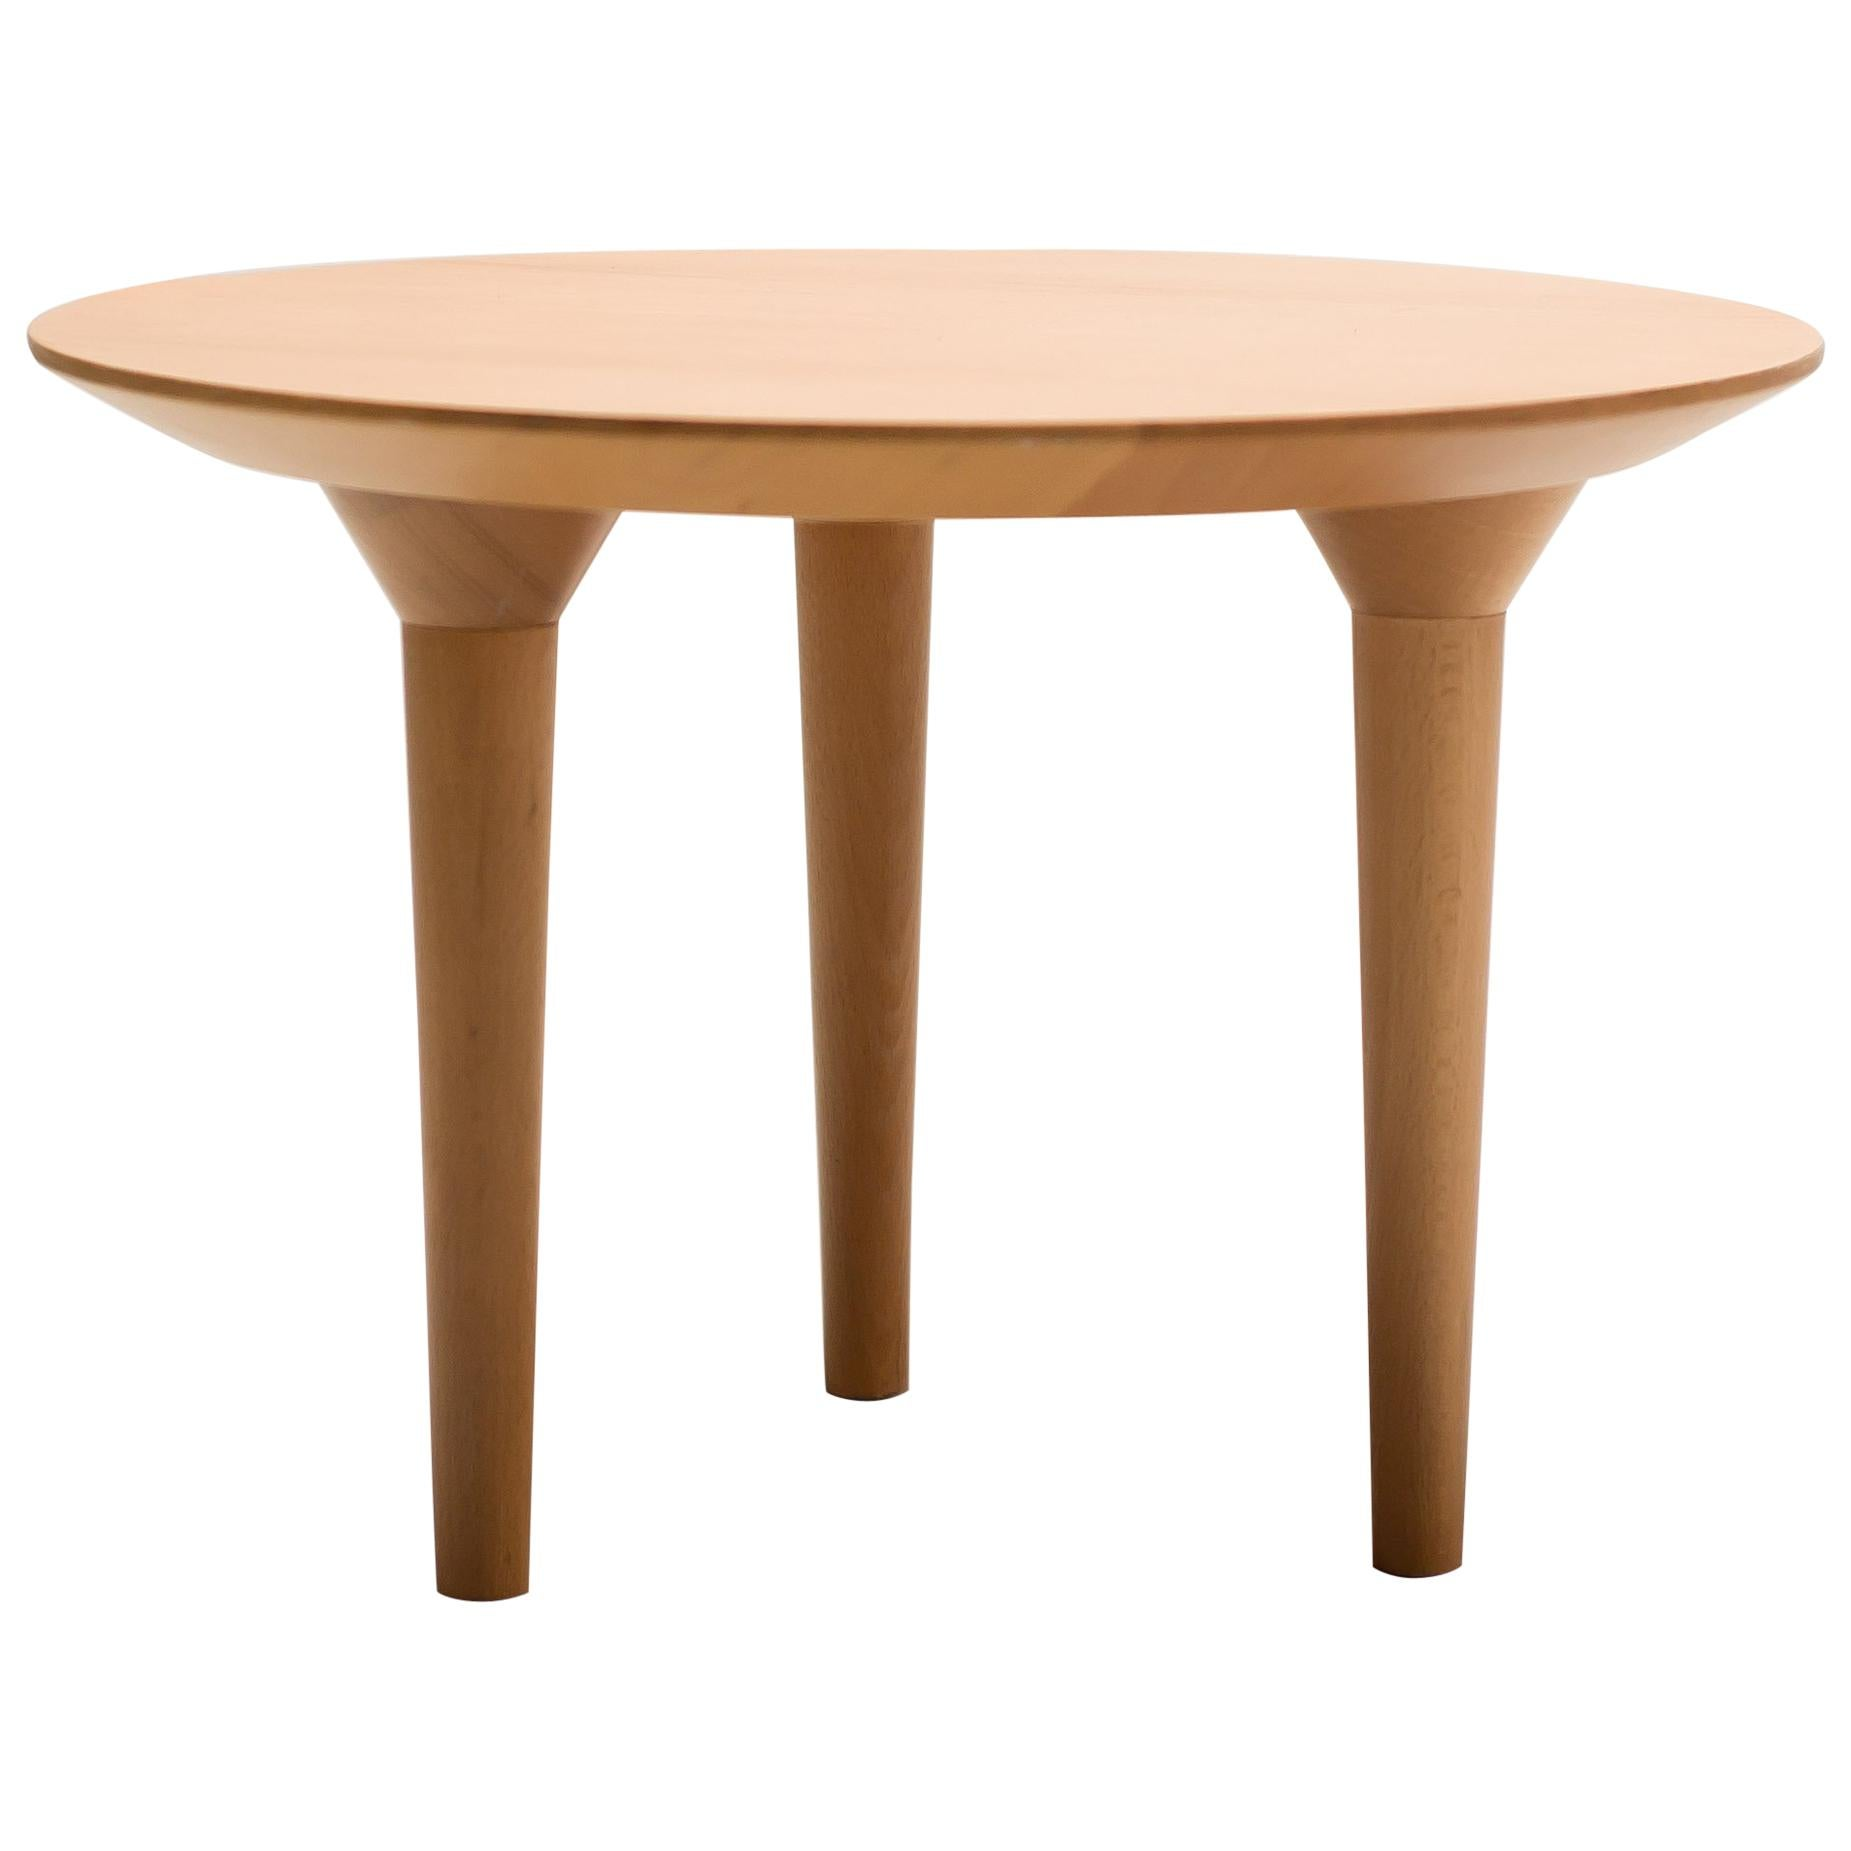 parco coffee table by lluis clotet for driade for sale at 1stdibs rh 1stdibs com